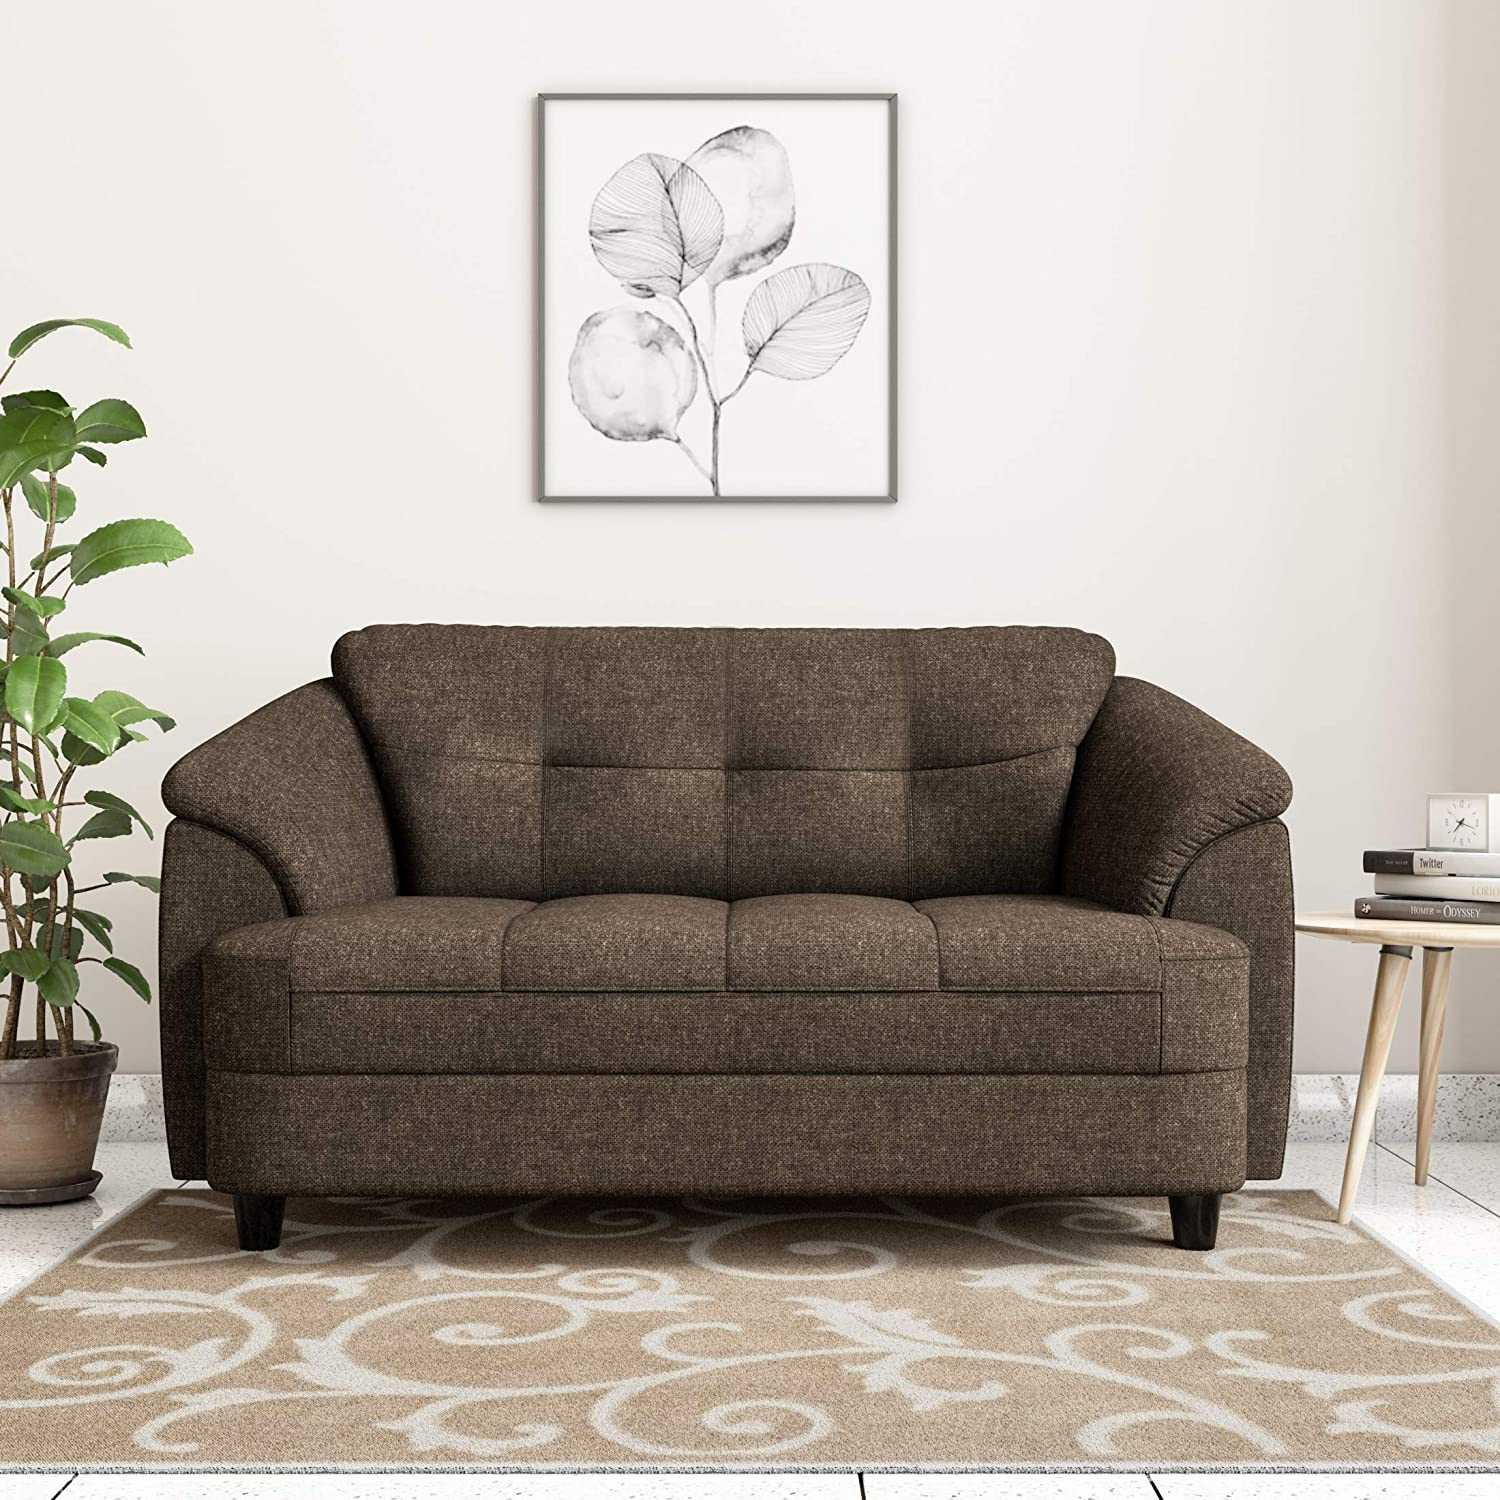 Shallo Fabric sofa 2 seater for Living Room